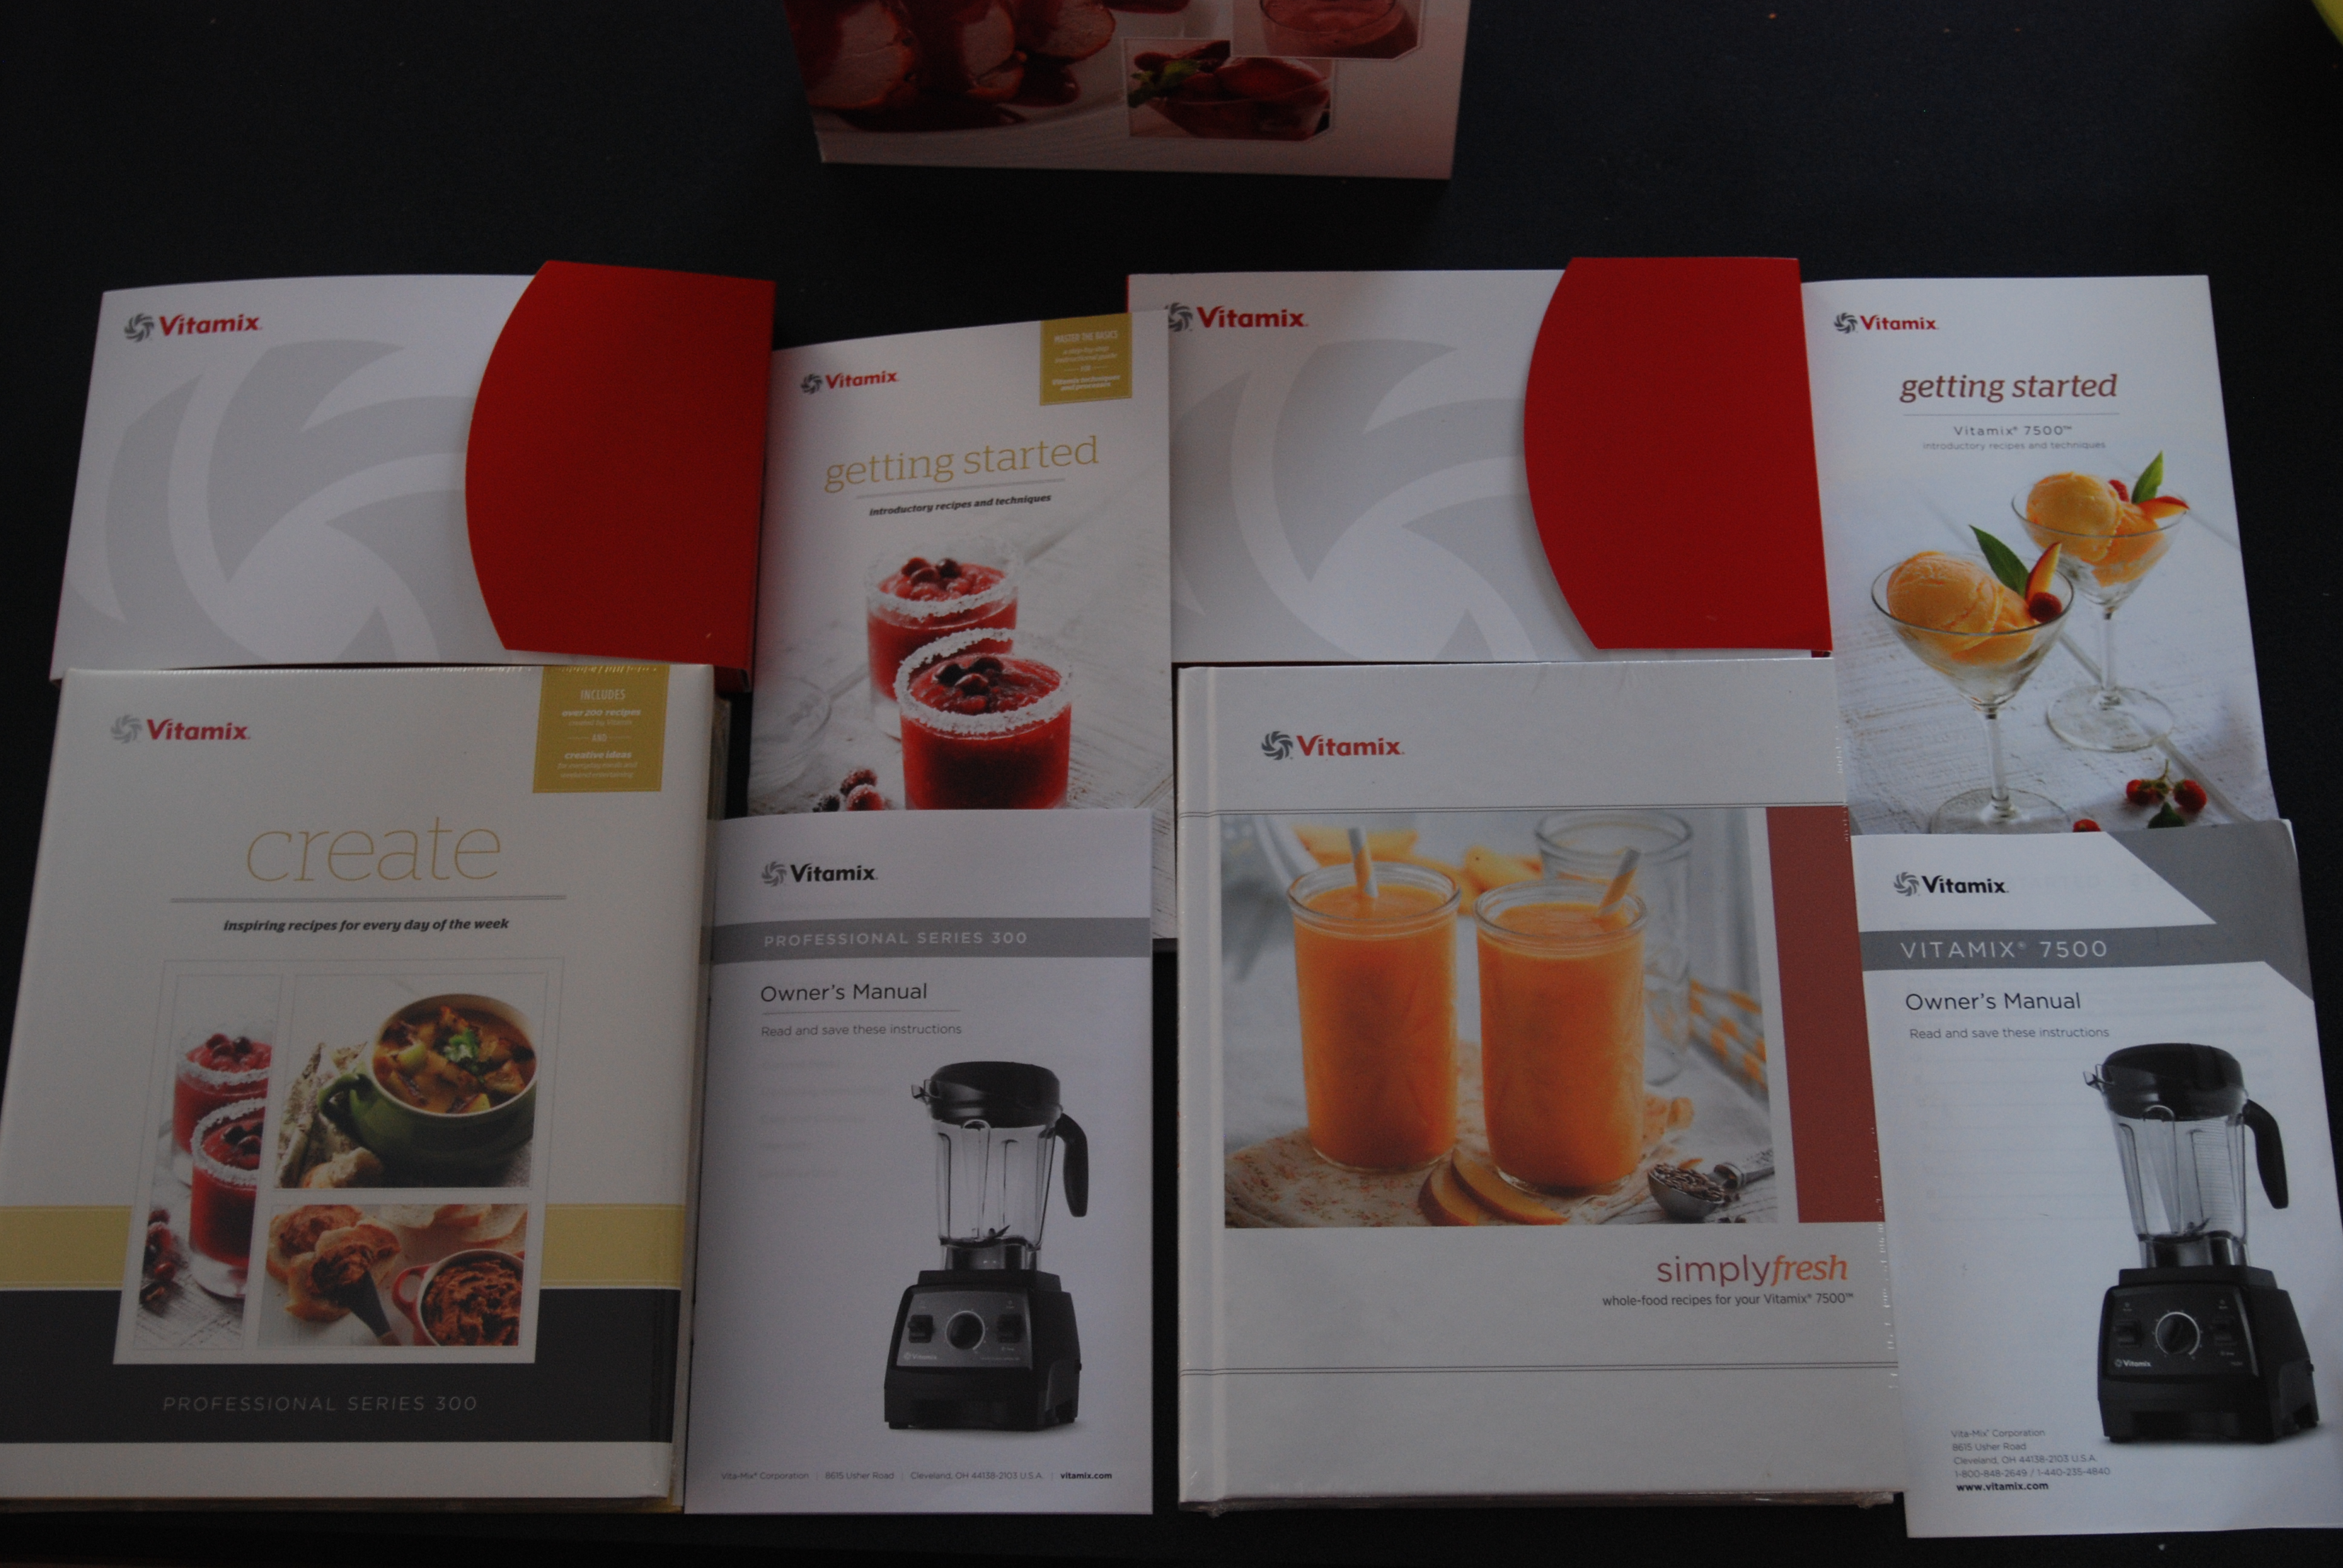 What is the difference between a vitamix 7500 and a vitamix the cookbook getting started guide and owners manual for the professional series 300 and vitamix forumfinder Images